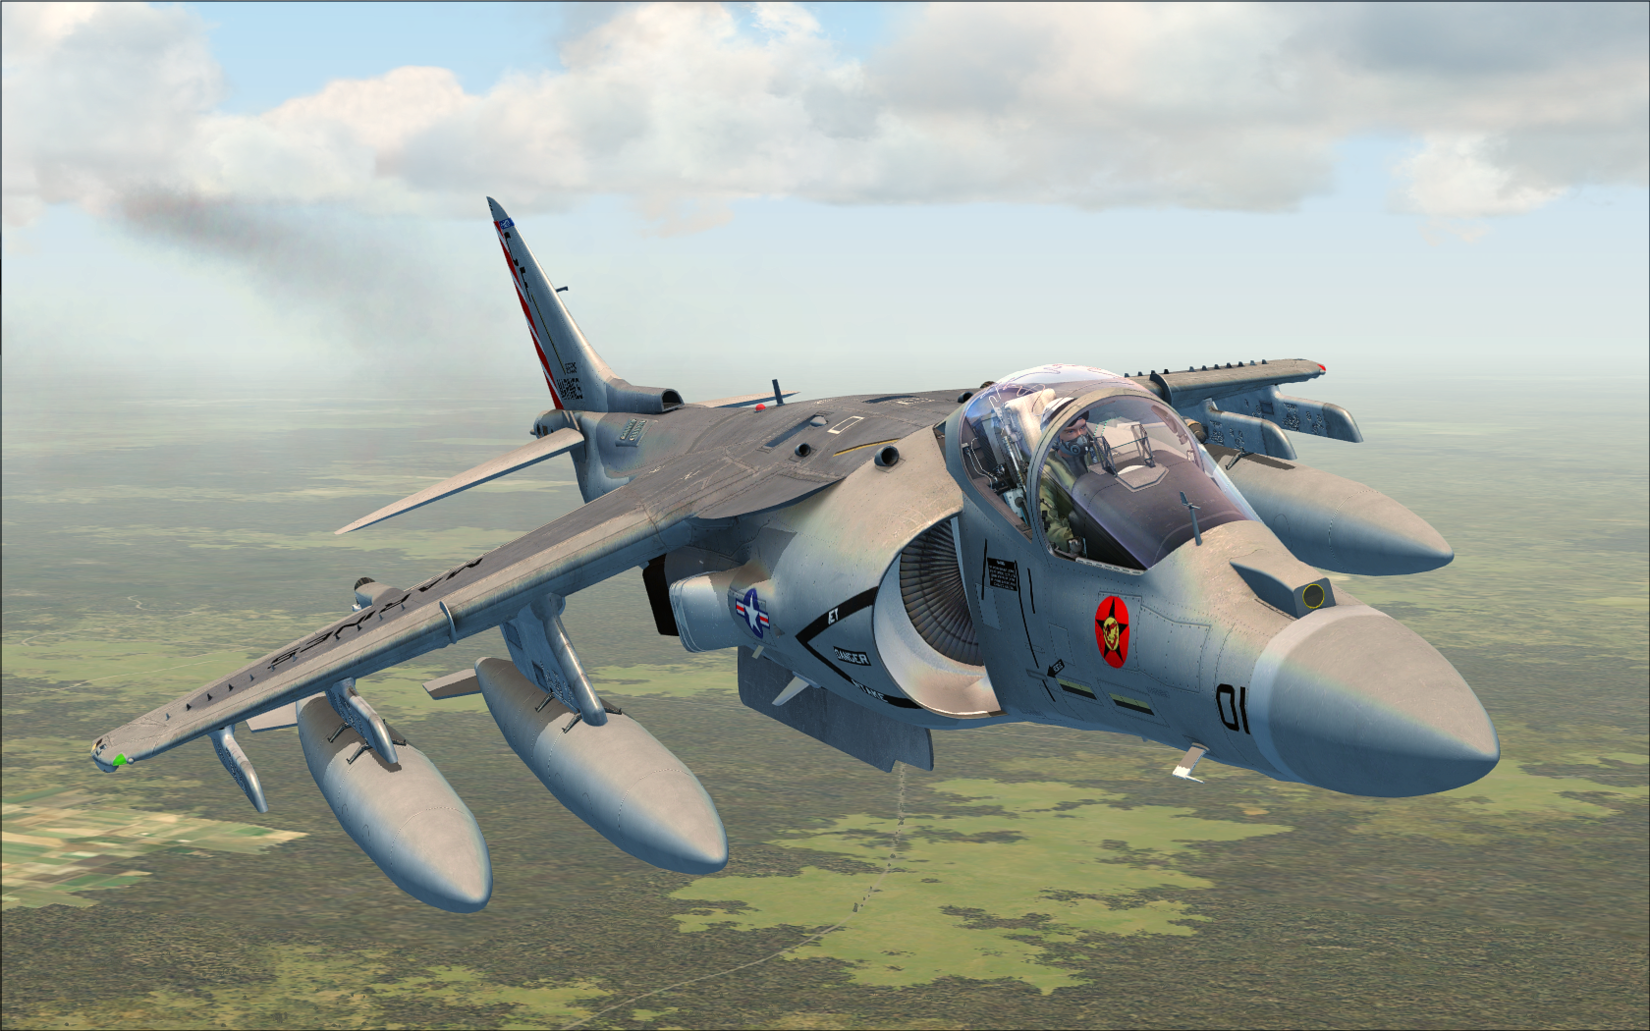 FSX payware Military Jets - SimHQ Forums